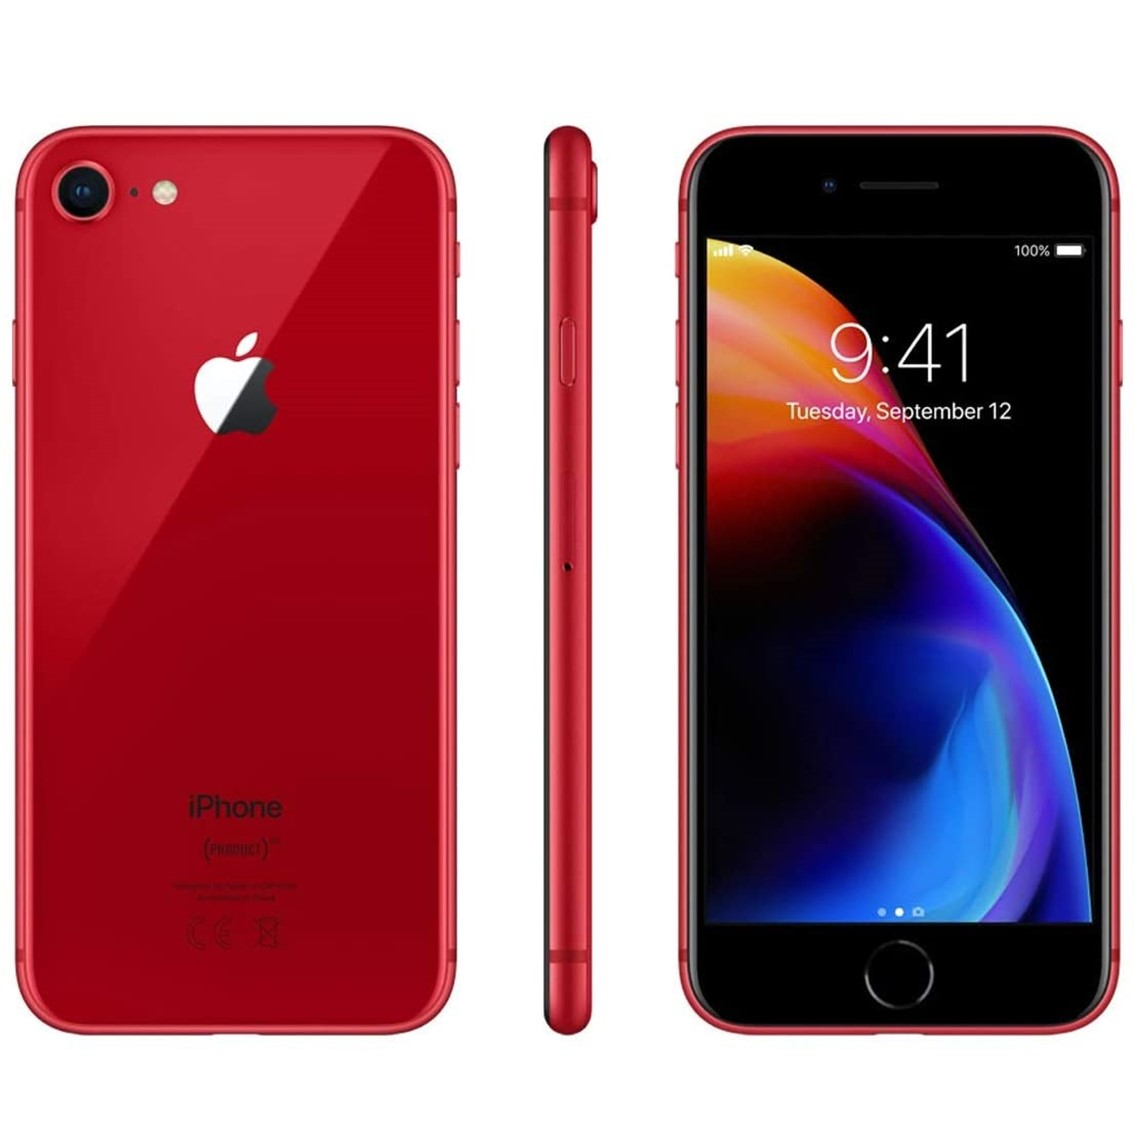 "TELEFONO MOVIL SMARTPHONE REWARE APPLE IPHONE 8 256GB RED / 4.7"" / LECTOR HUELLA / REACONDICIONADO / REFURBISH / GRADO A+"